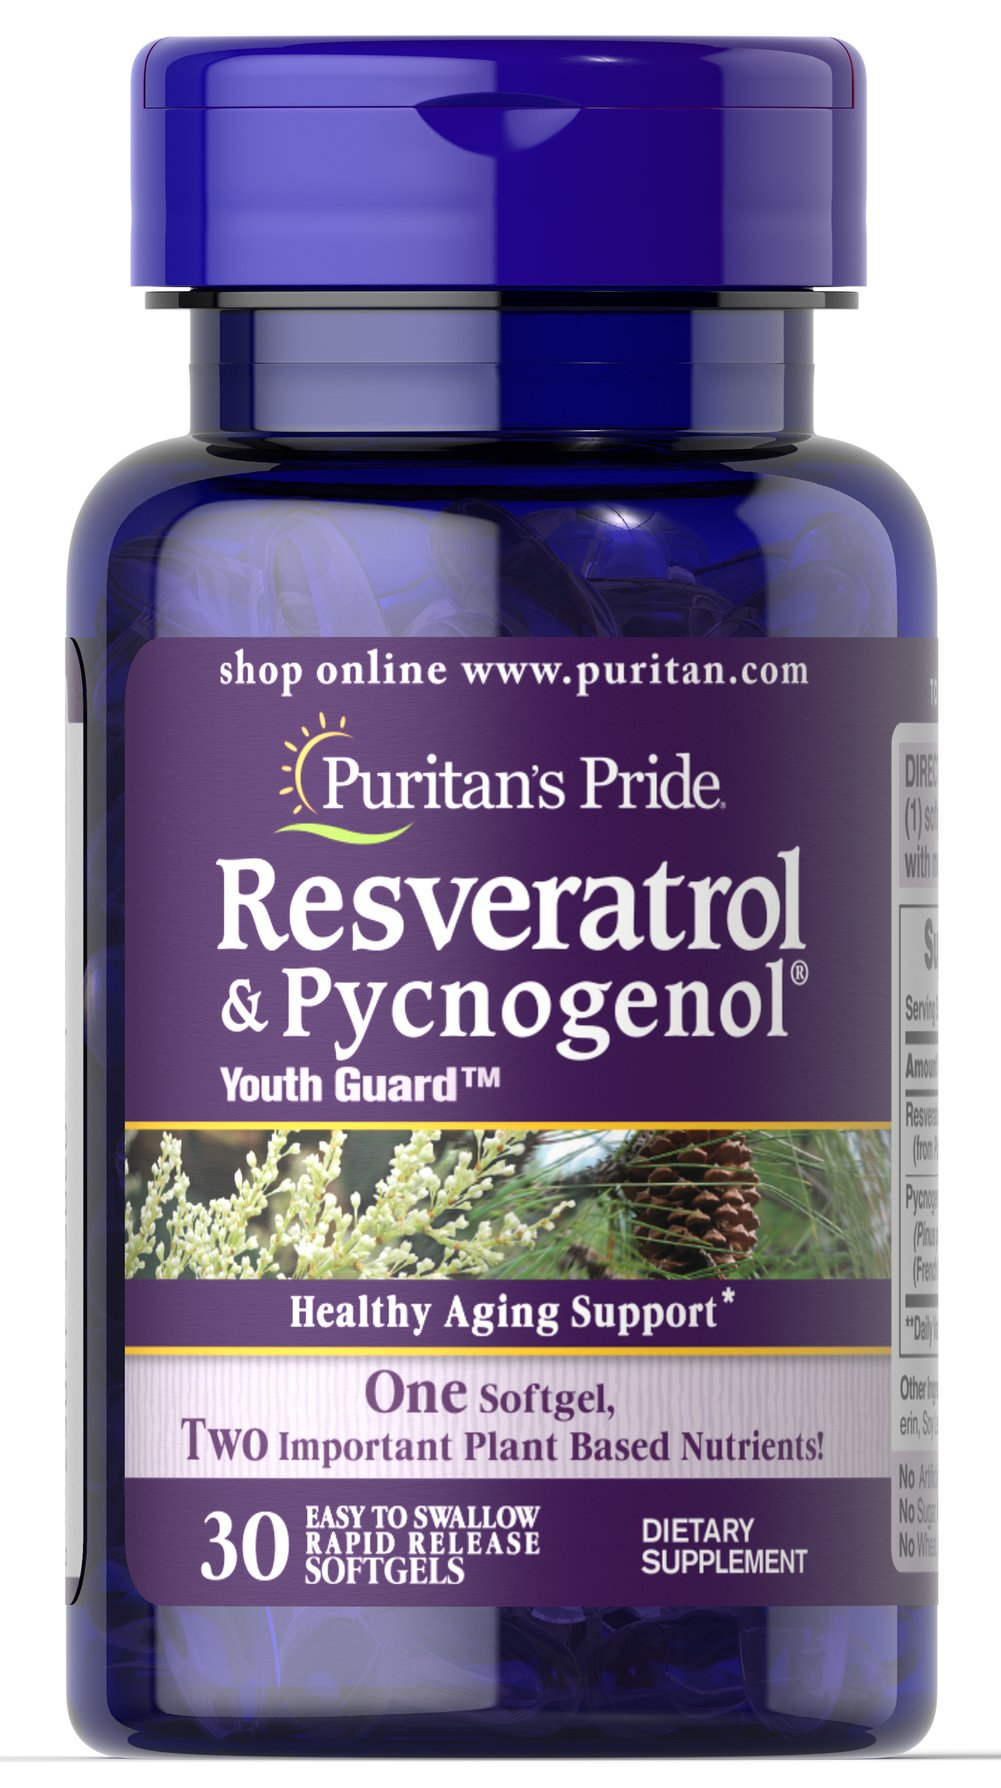 Resveratrol 100 mg & Pycnogenol® 30 mg  30 Softgels 100 mg/30 mg $24.99